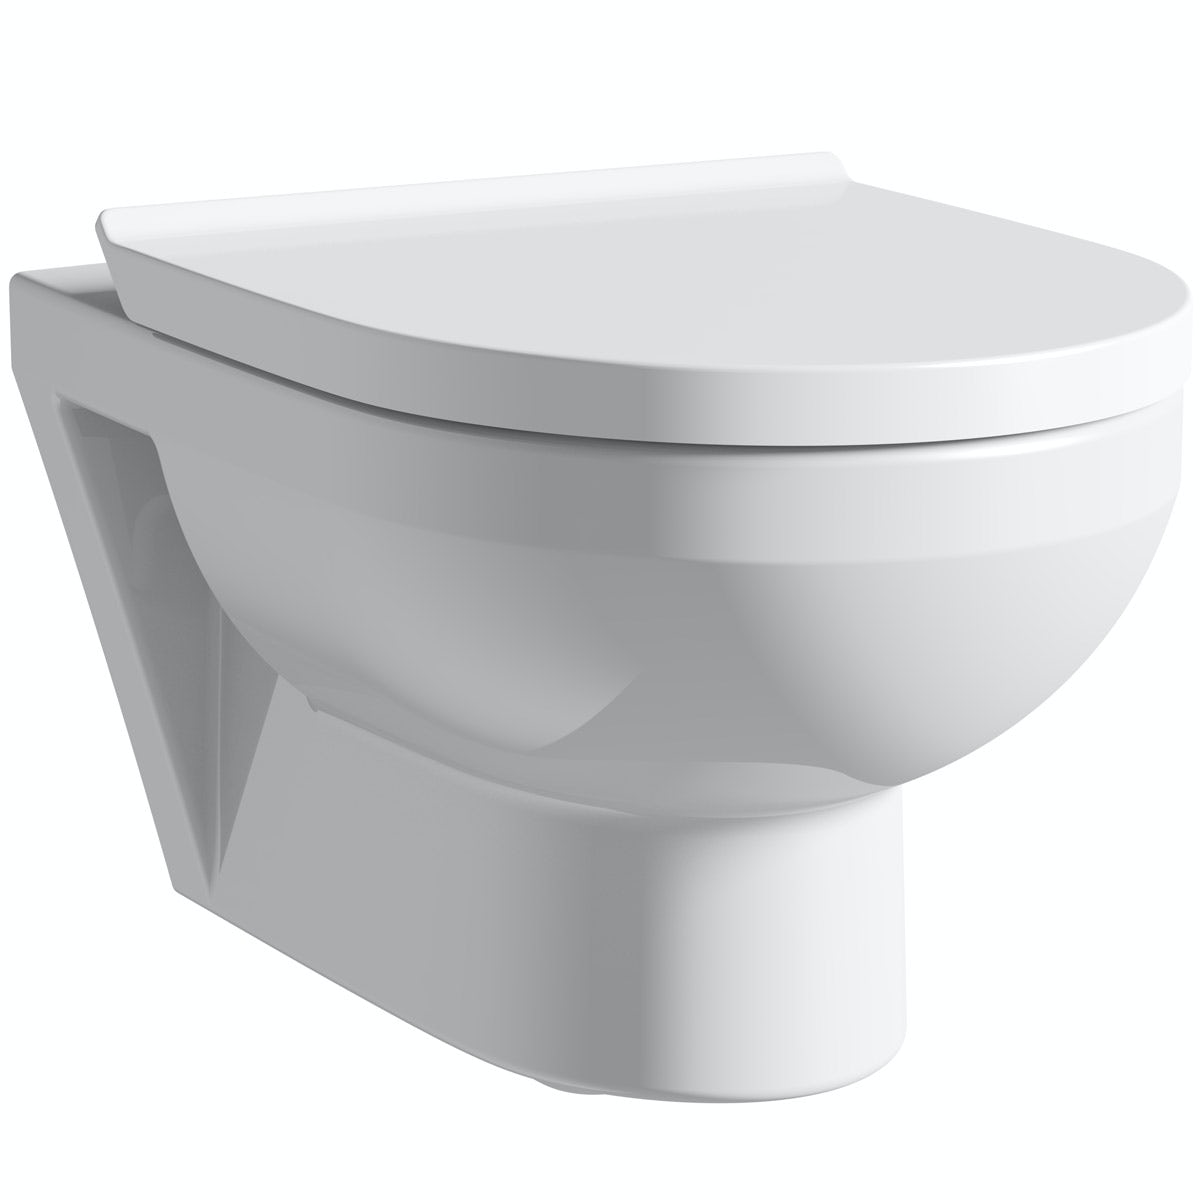 Duravit Durastyle Basic rimless wall hung toilet with soft close toilet seat